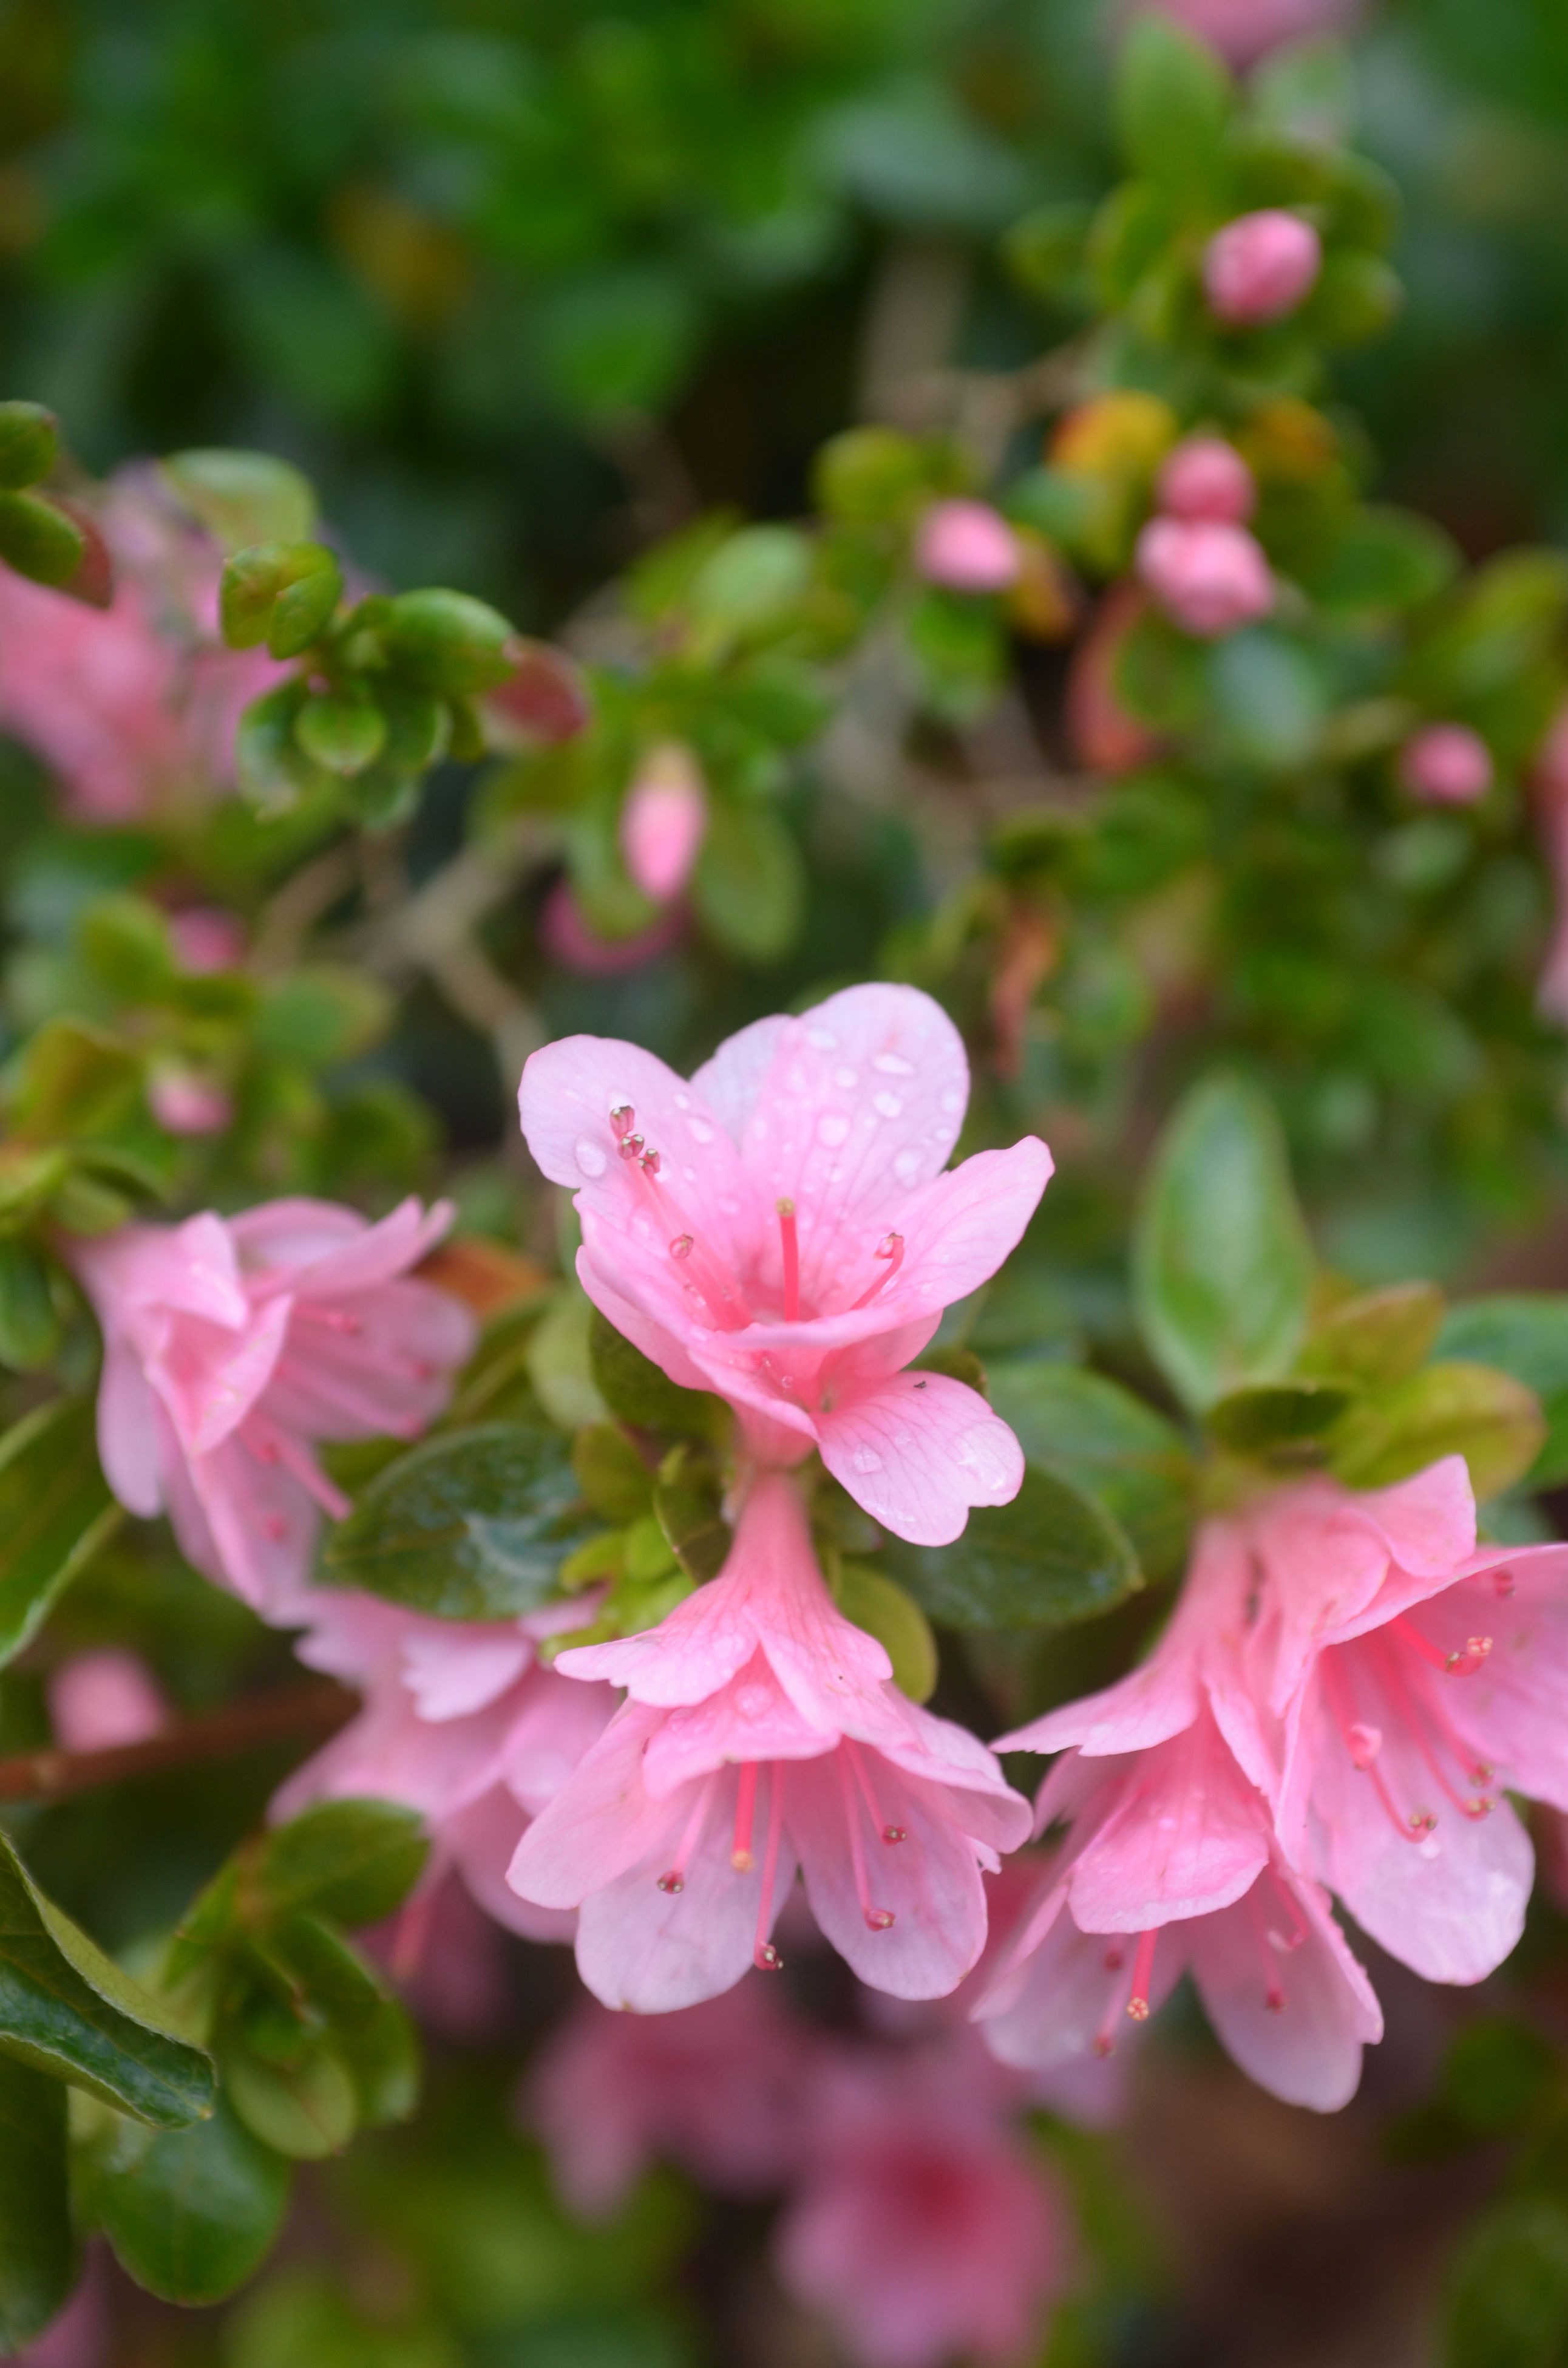 flower, nature, petal, freshness, fragility, growth, pink color, beauty in nature, close-up, flower head, plant, rhododendron, outdoors, stamen, no people, wet, day, pistil